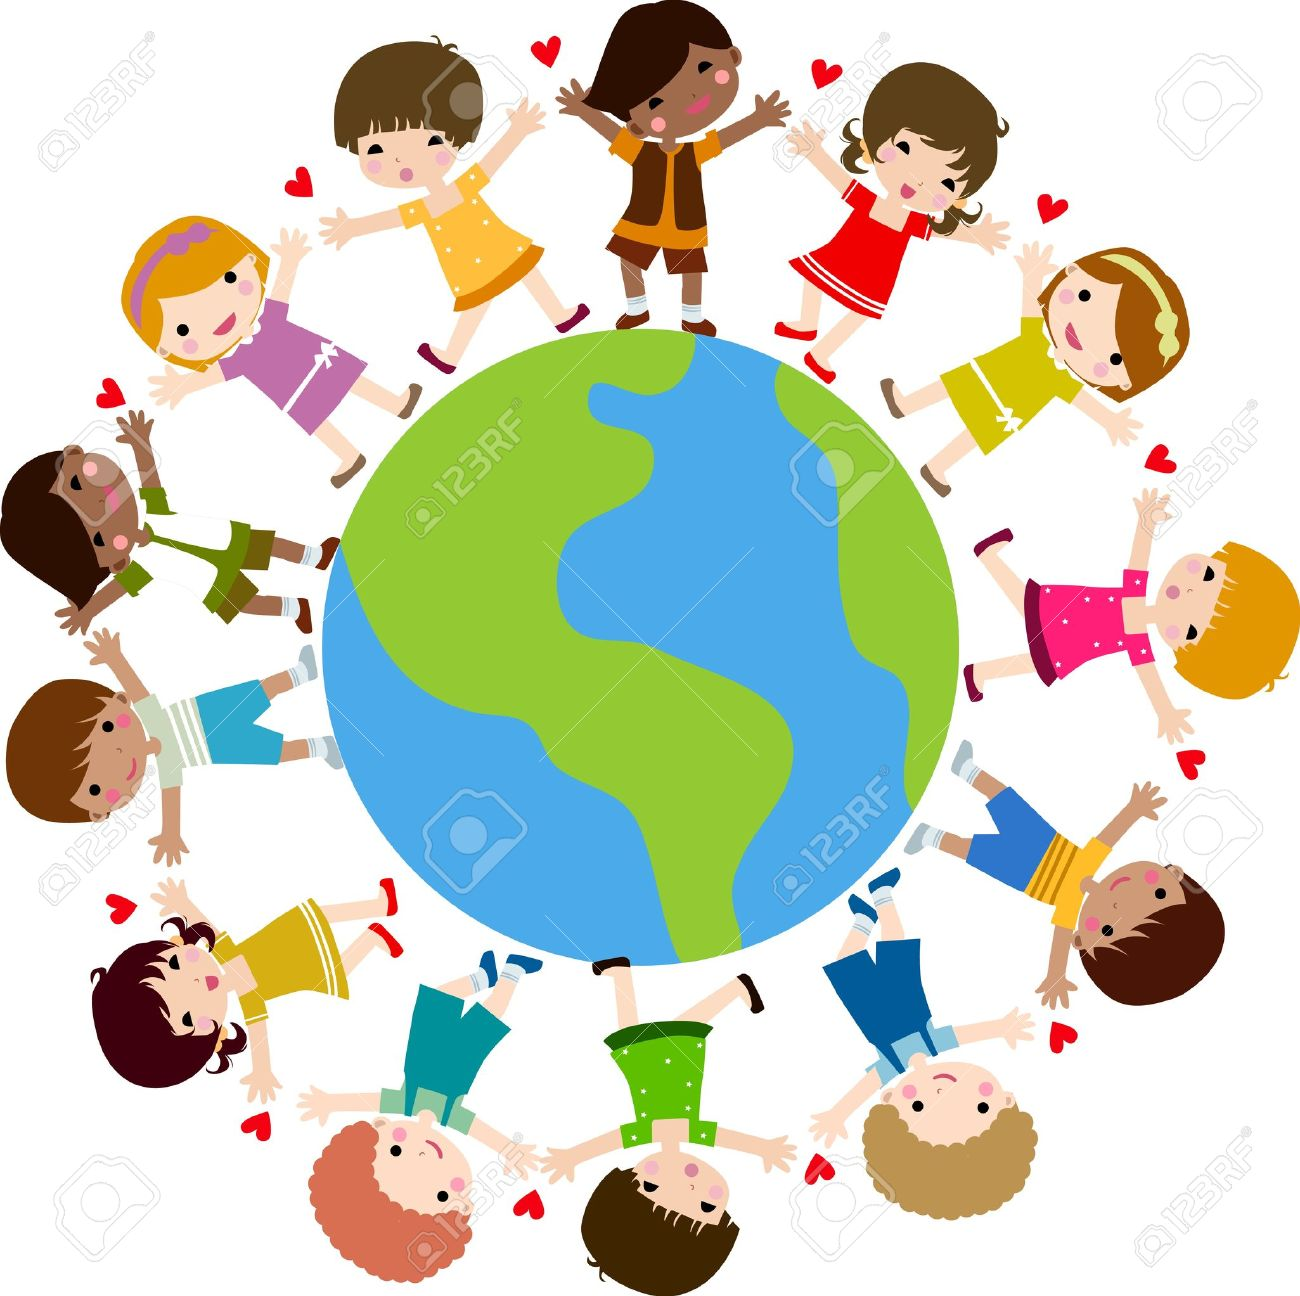 children around the world royalty free cliparts vectors and stock rh 123rf com